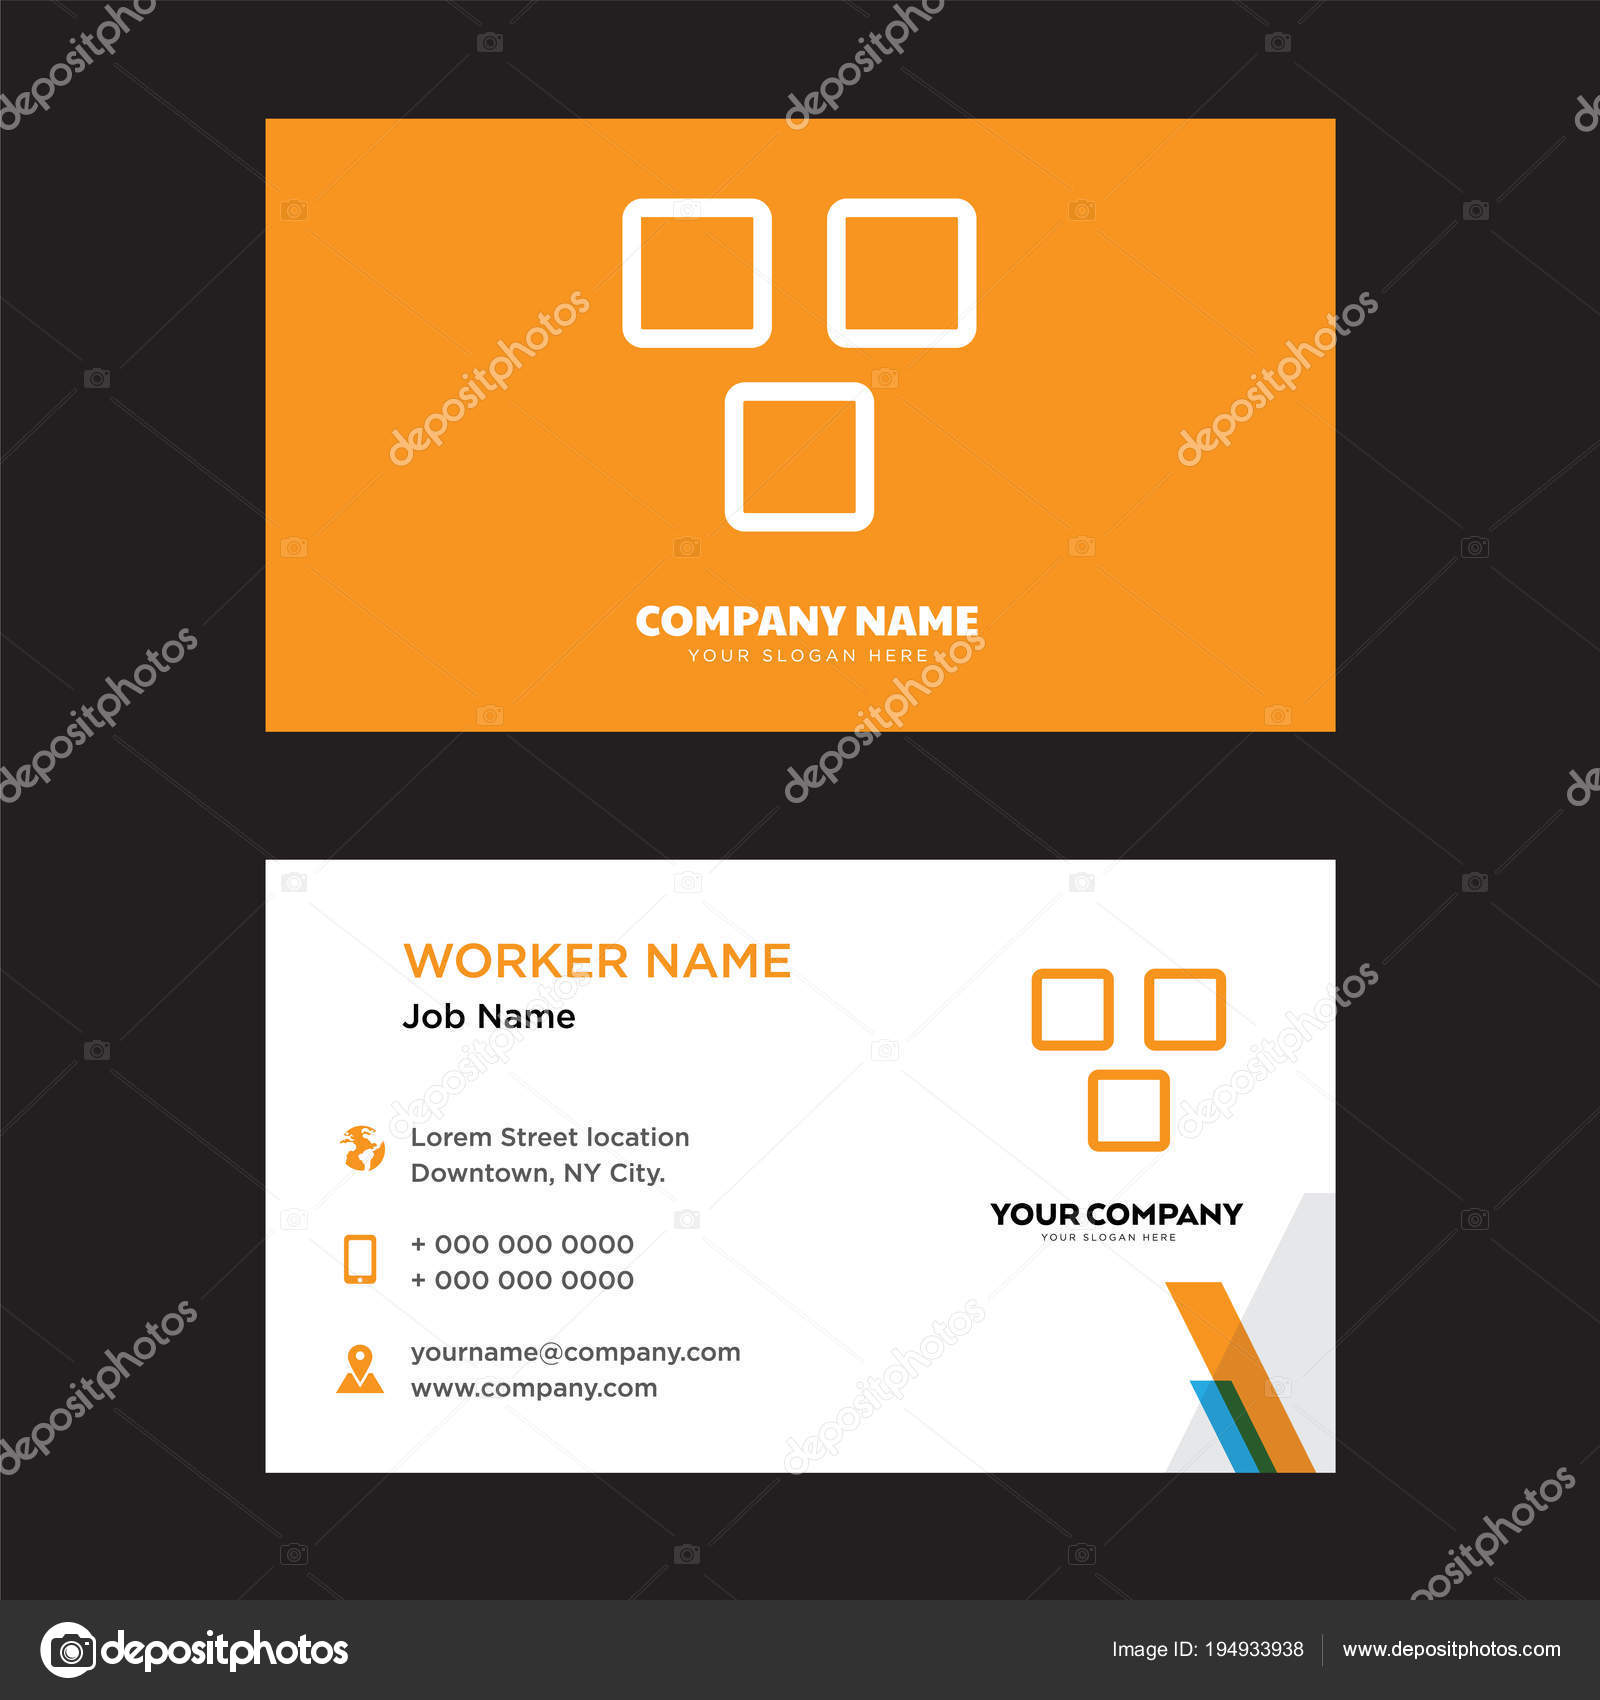 Apps business card design vetores de stock vectorbest 194933938 apps business card design template visiting for your company modern horizontal identity card vector vetor de vectorbest reheart Images